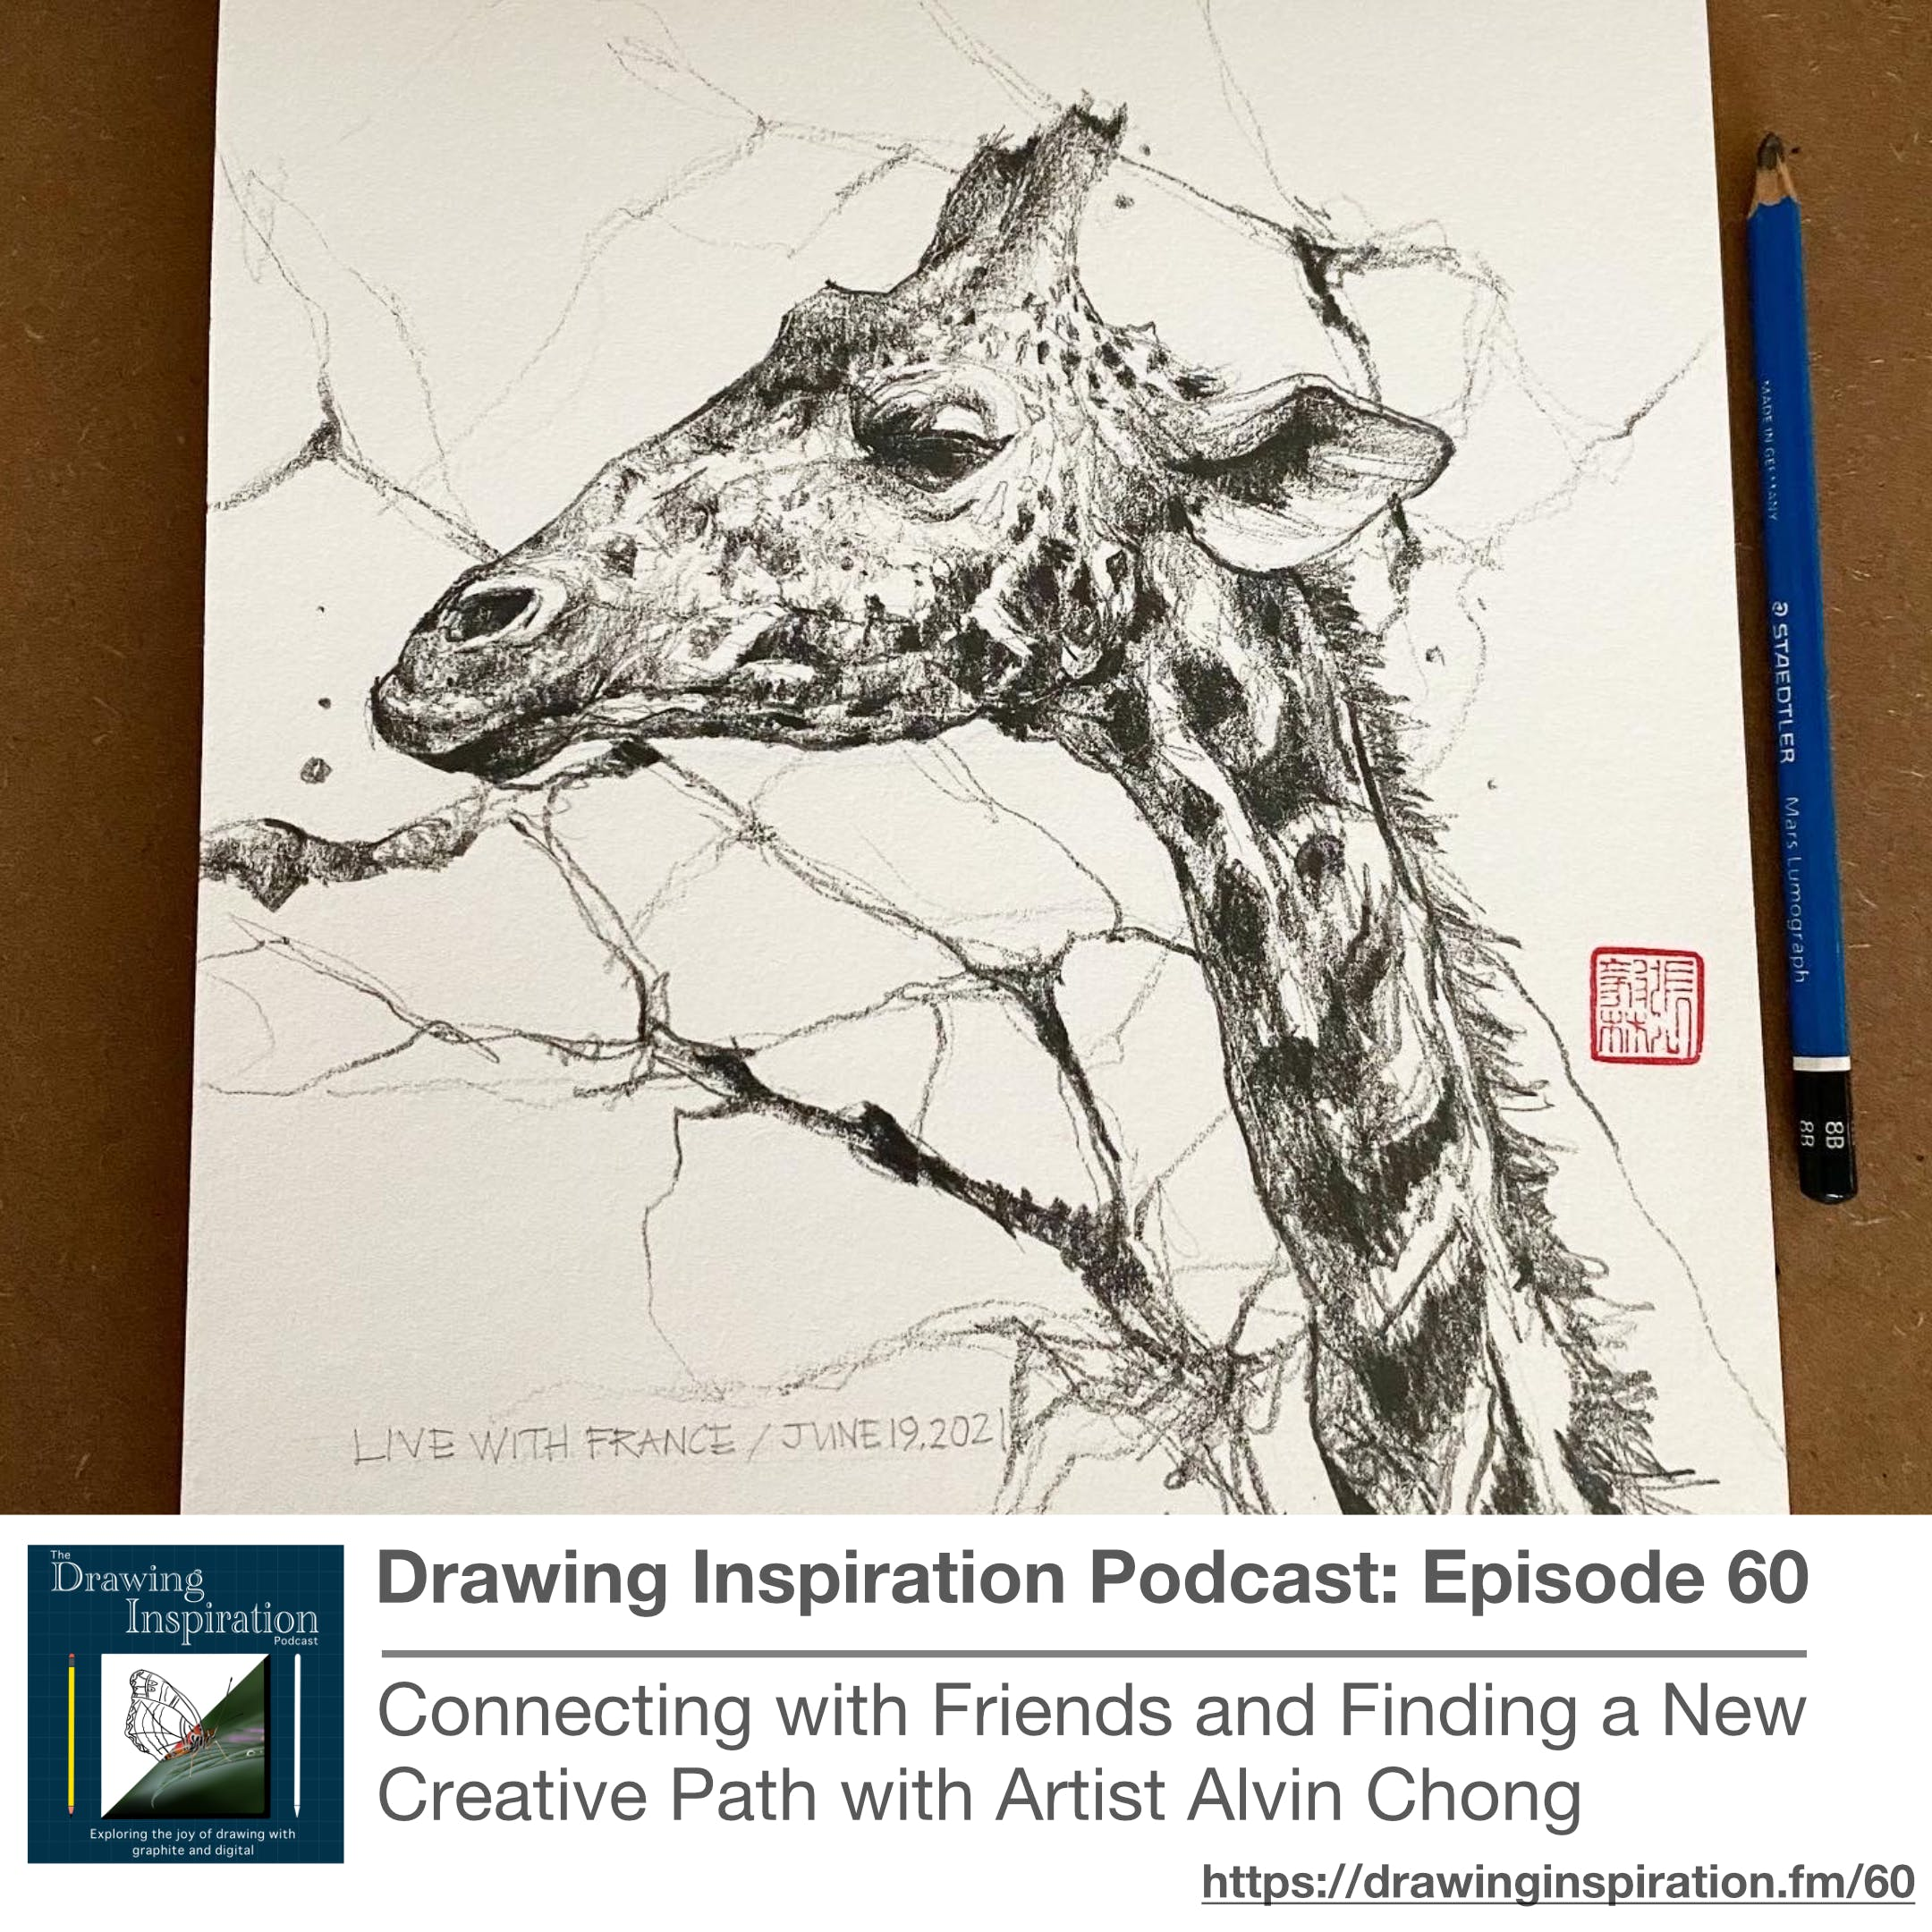 60: Connecting with Friends and Finding a New Creative Path with Artist Alvin Chong